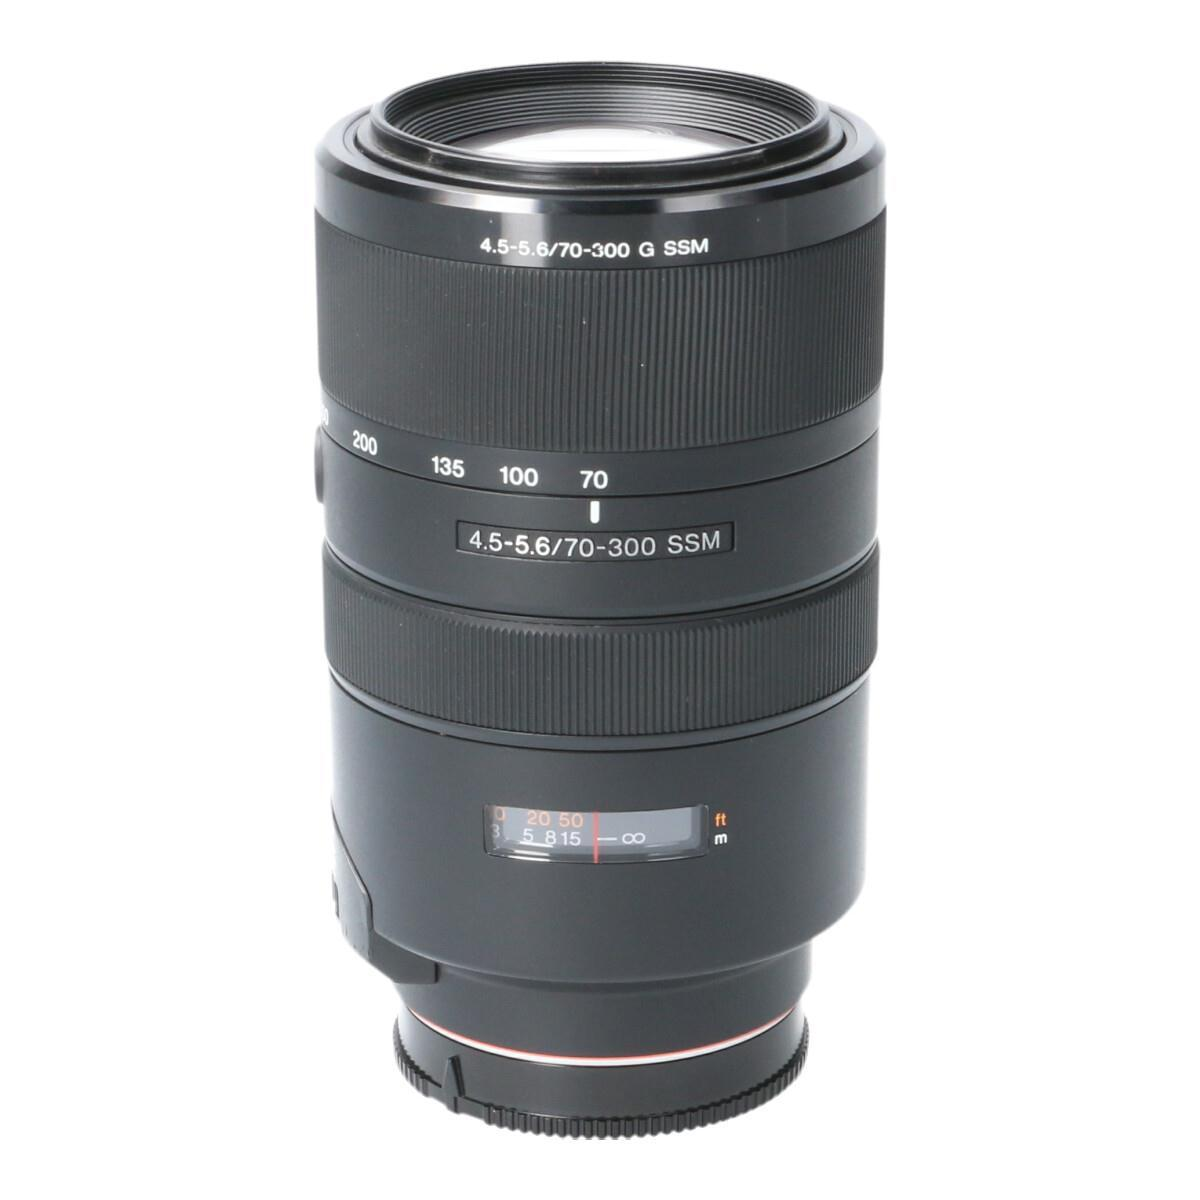 SONY 70-300mm F4.5-5.6G SSM【中古】